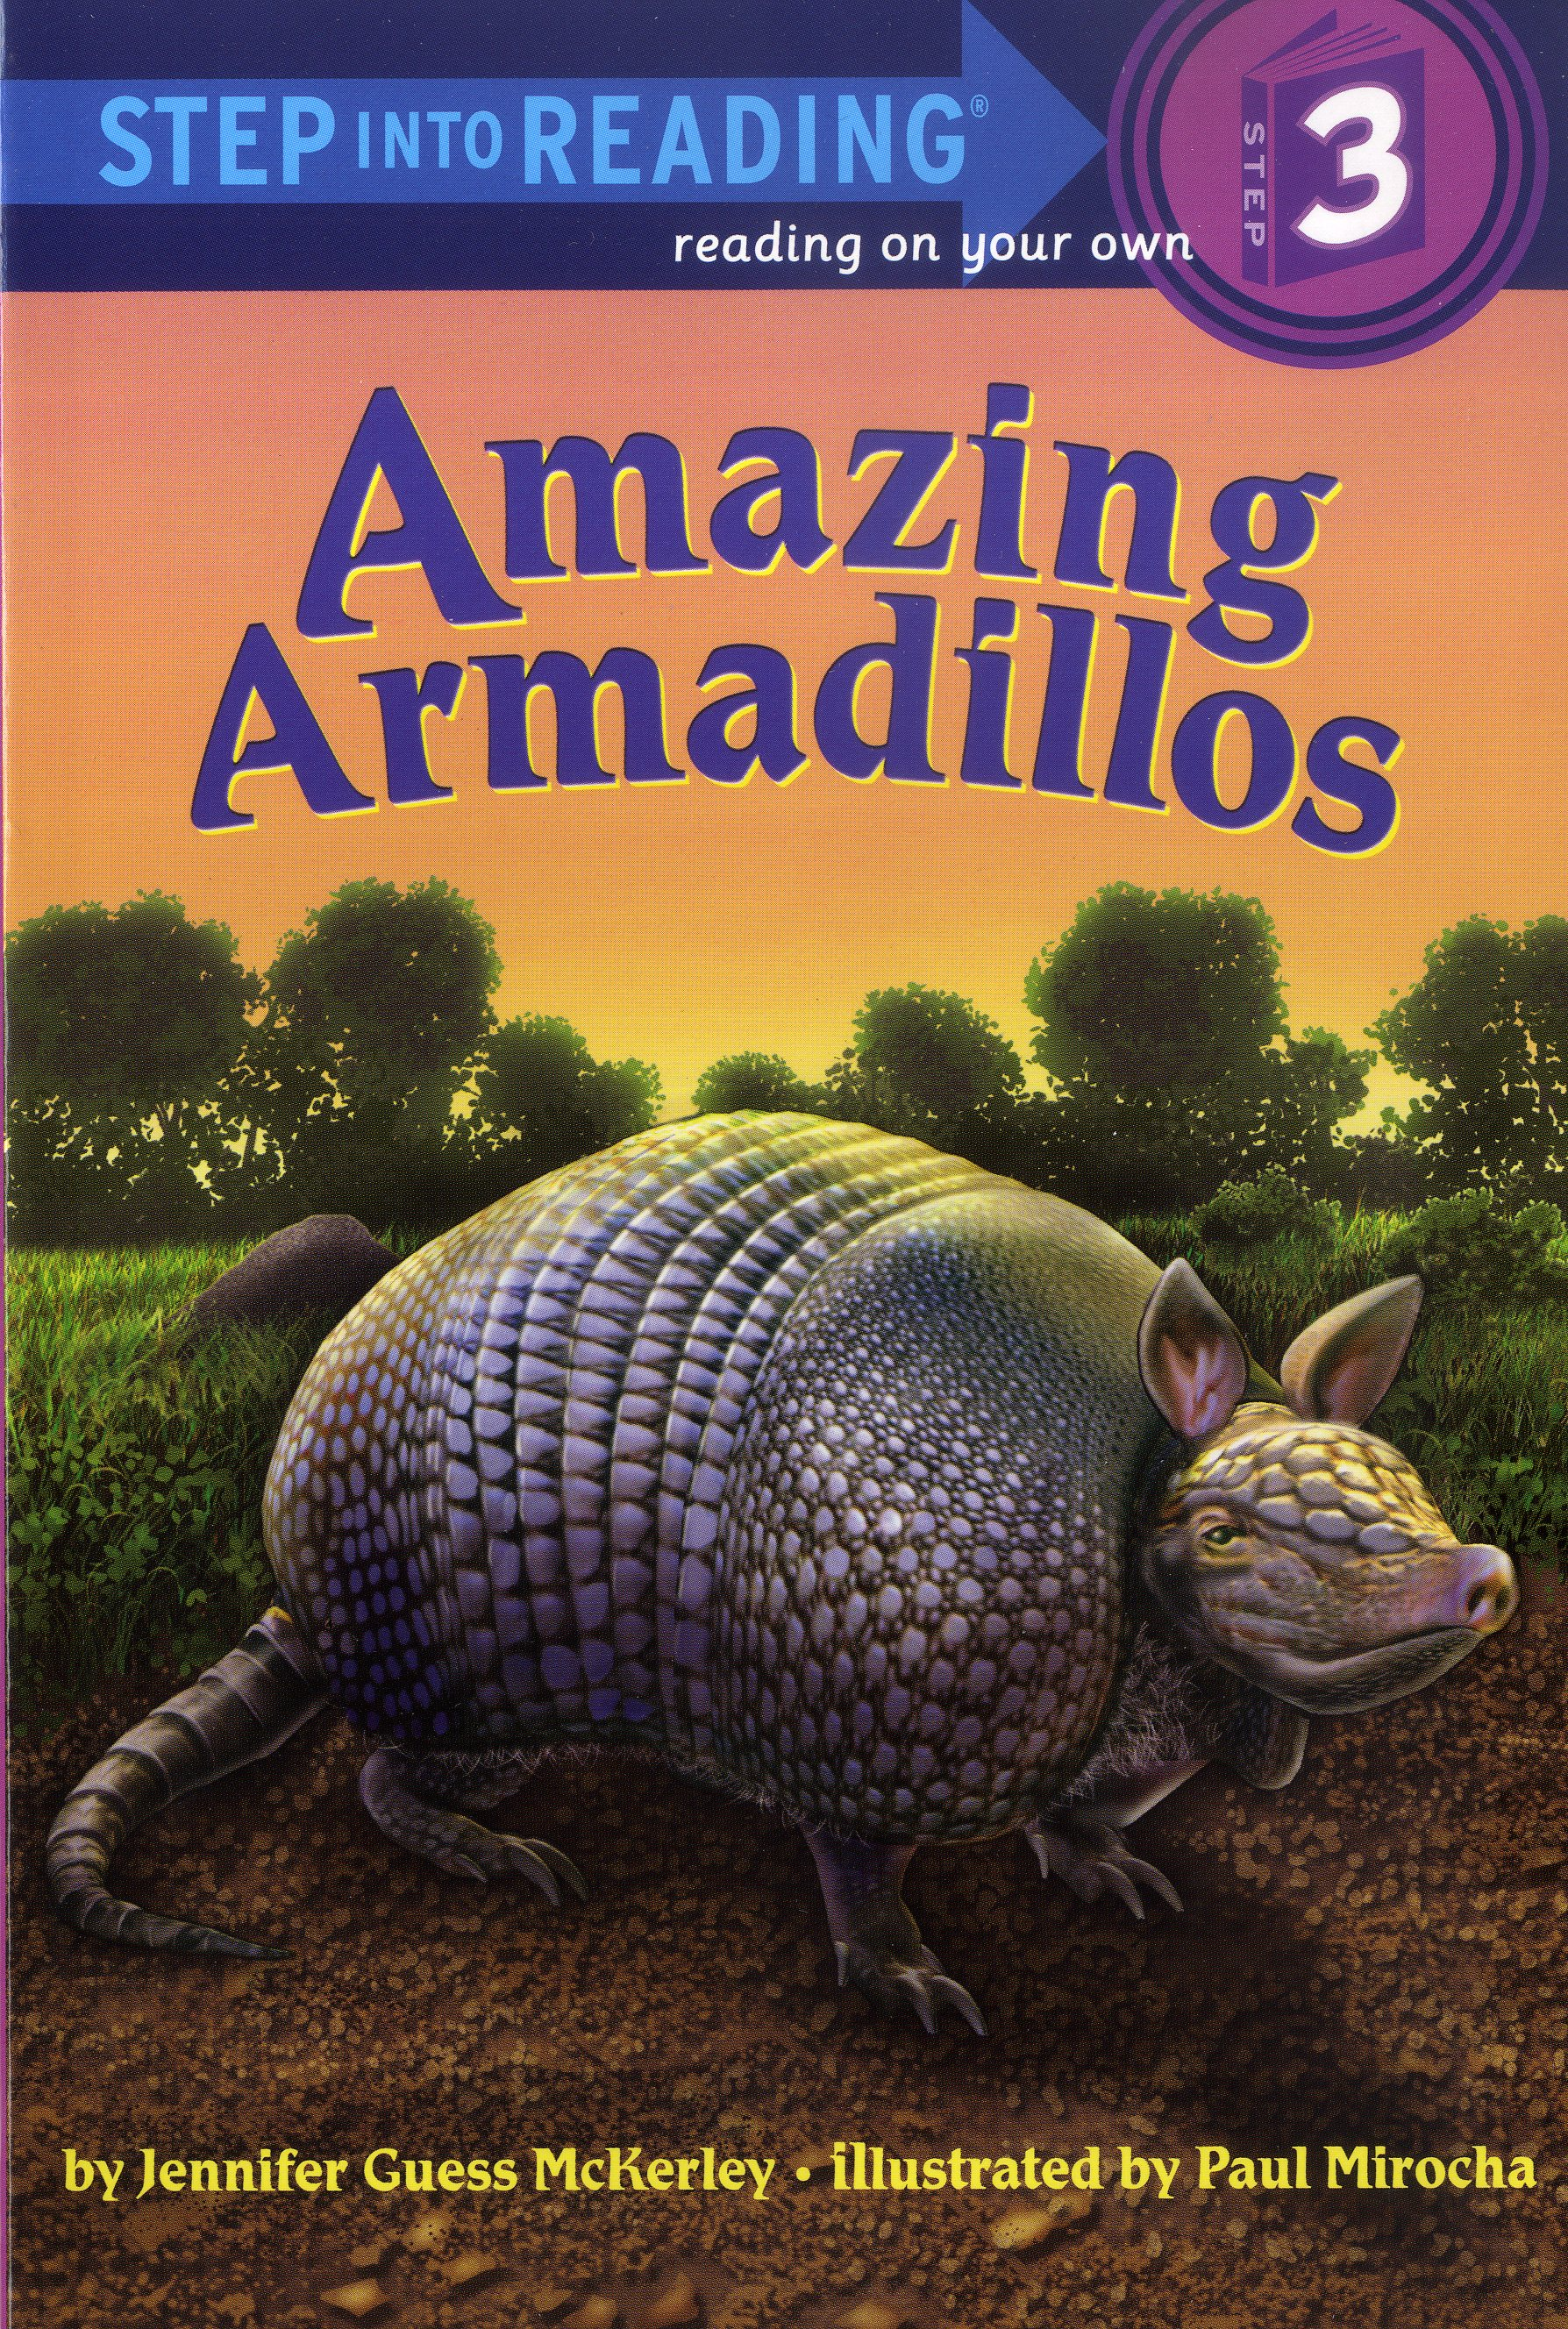 Thumnail : Step into Reading 3 Amazing Armadillos